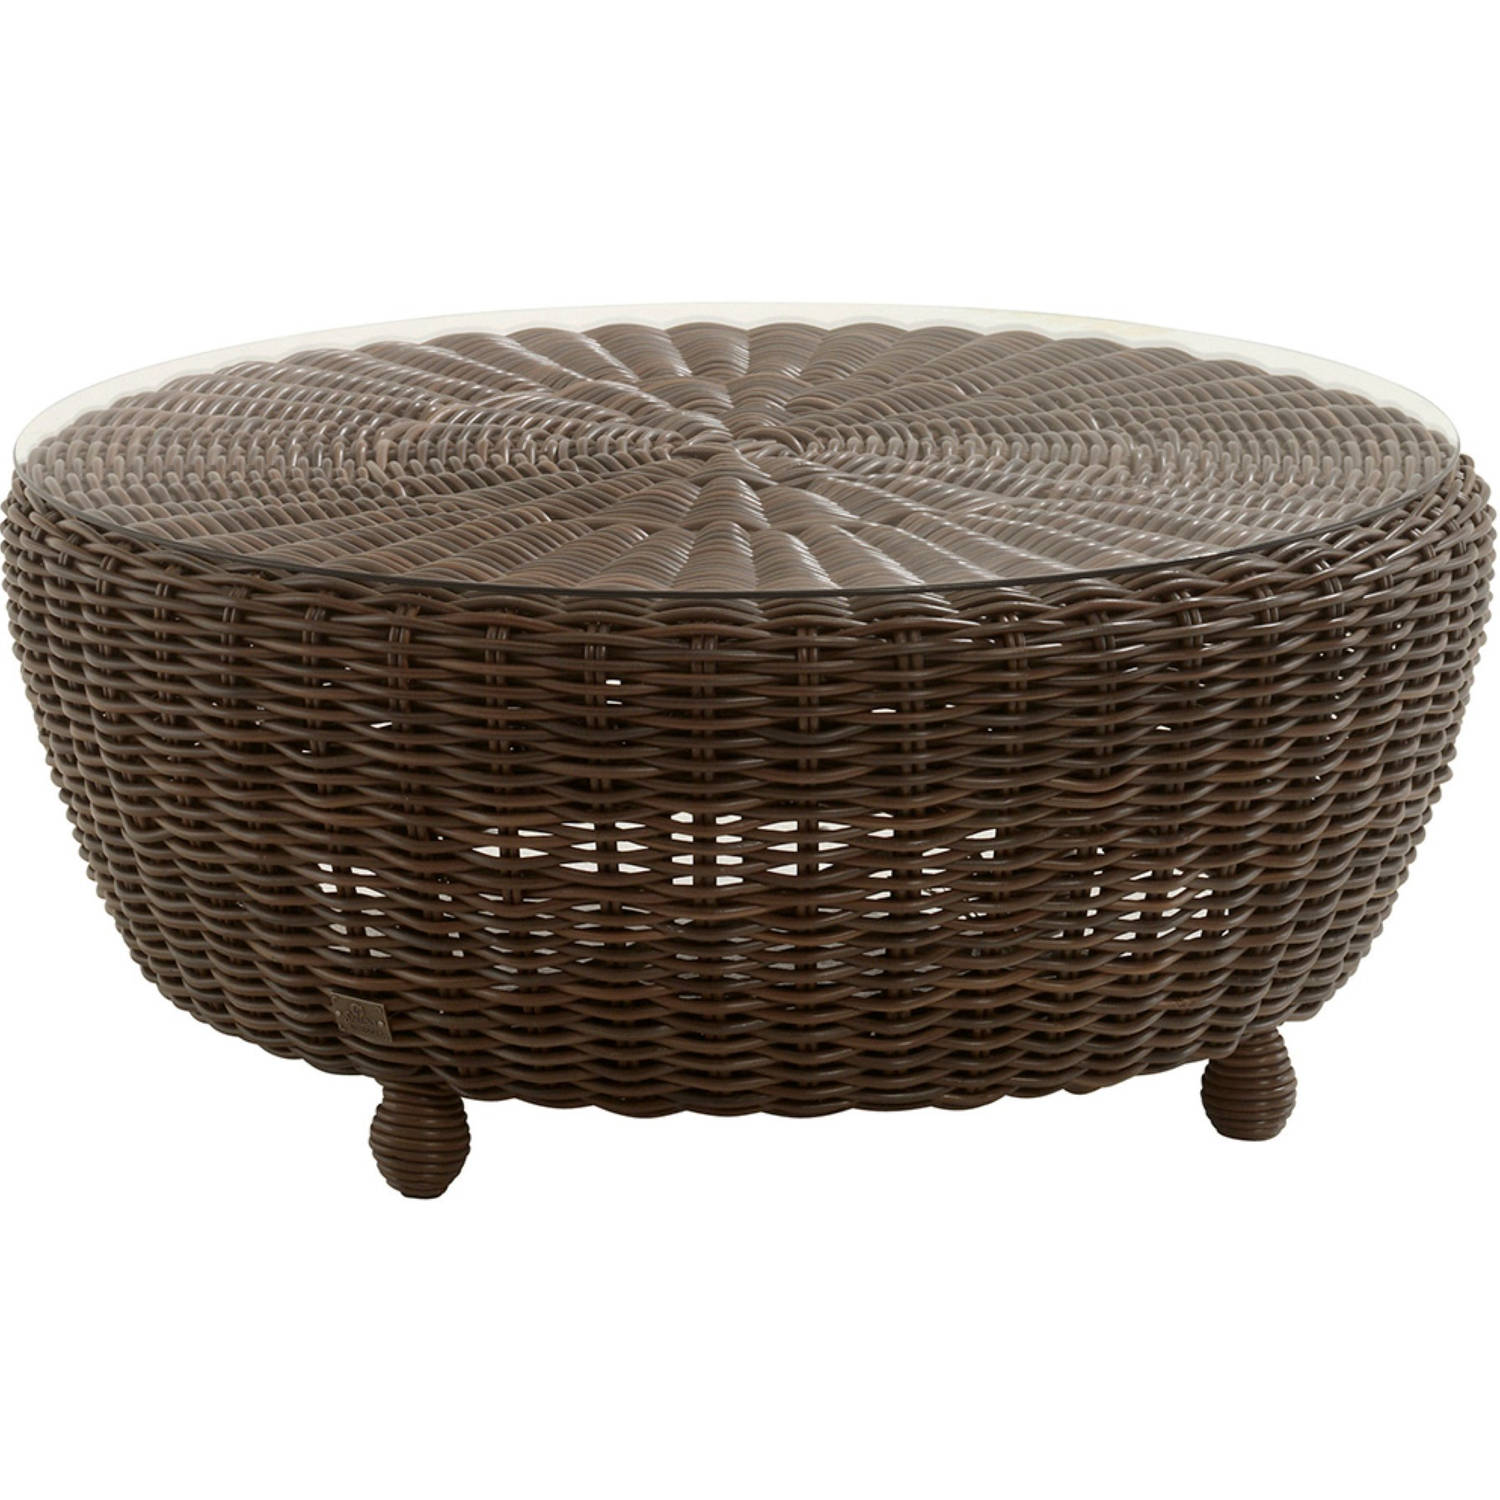 Madoera Coffeetable 100cm Rond Colonial